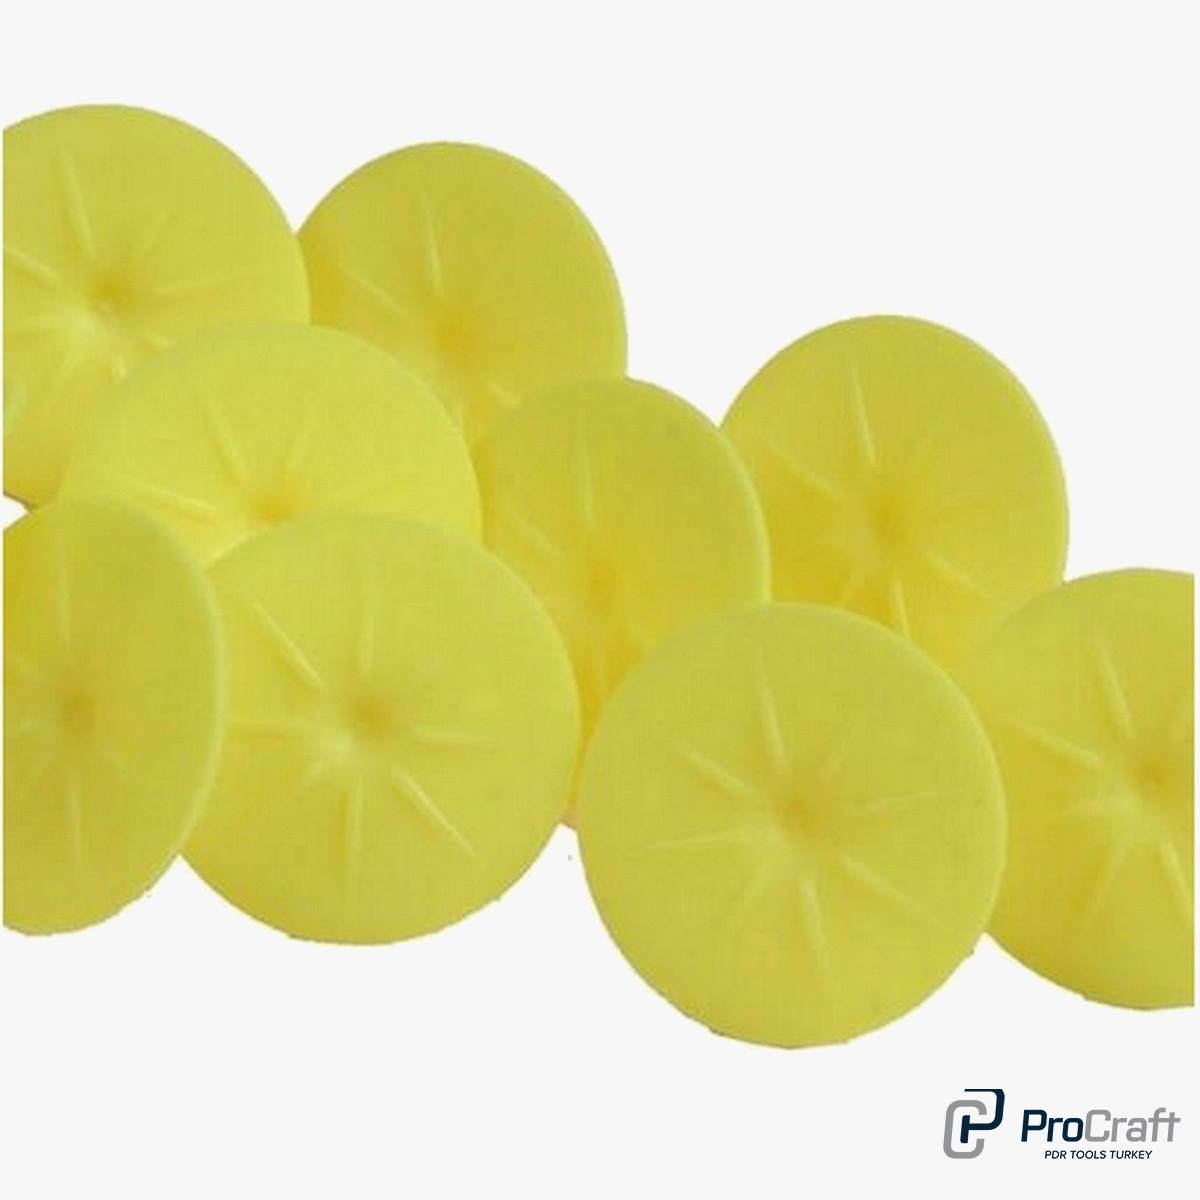 Procraft Yellow Round Tabs 1 Packet 10 Pcs